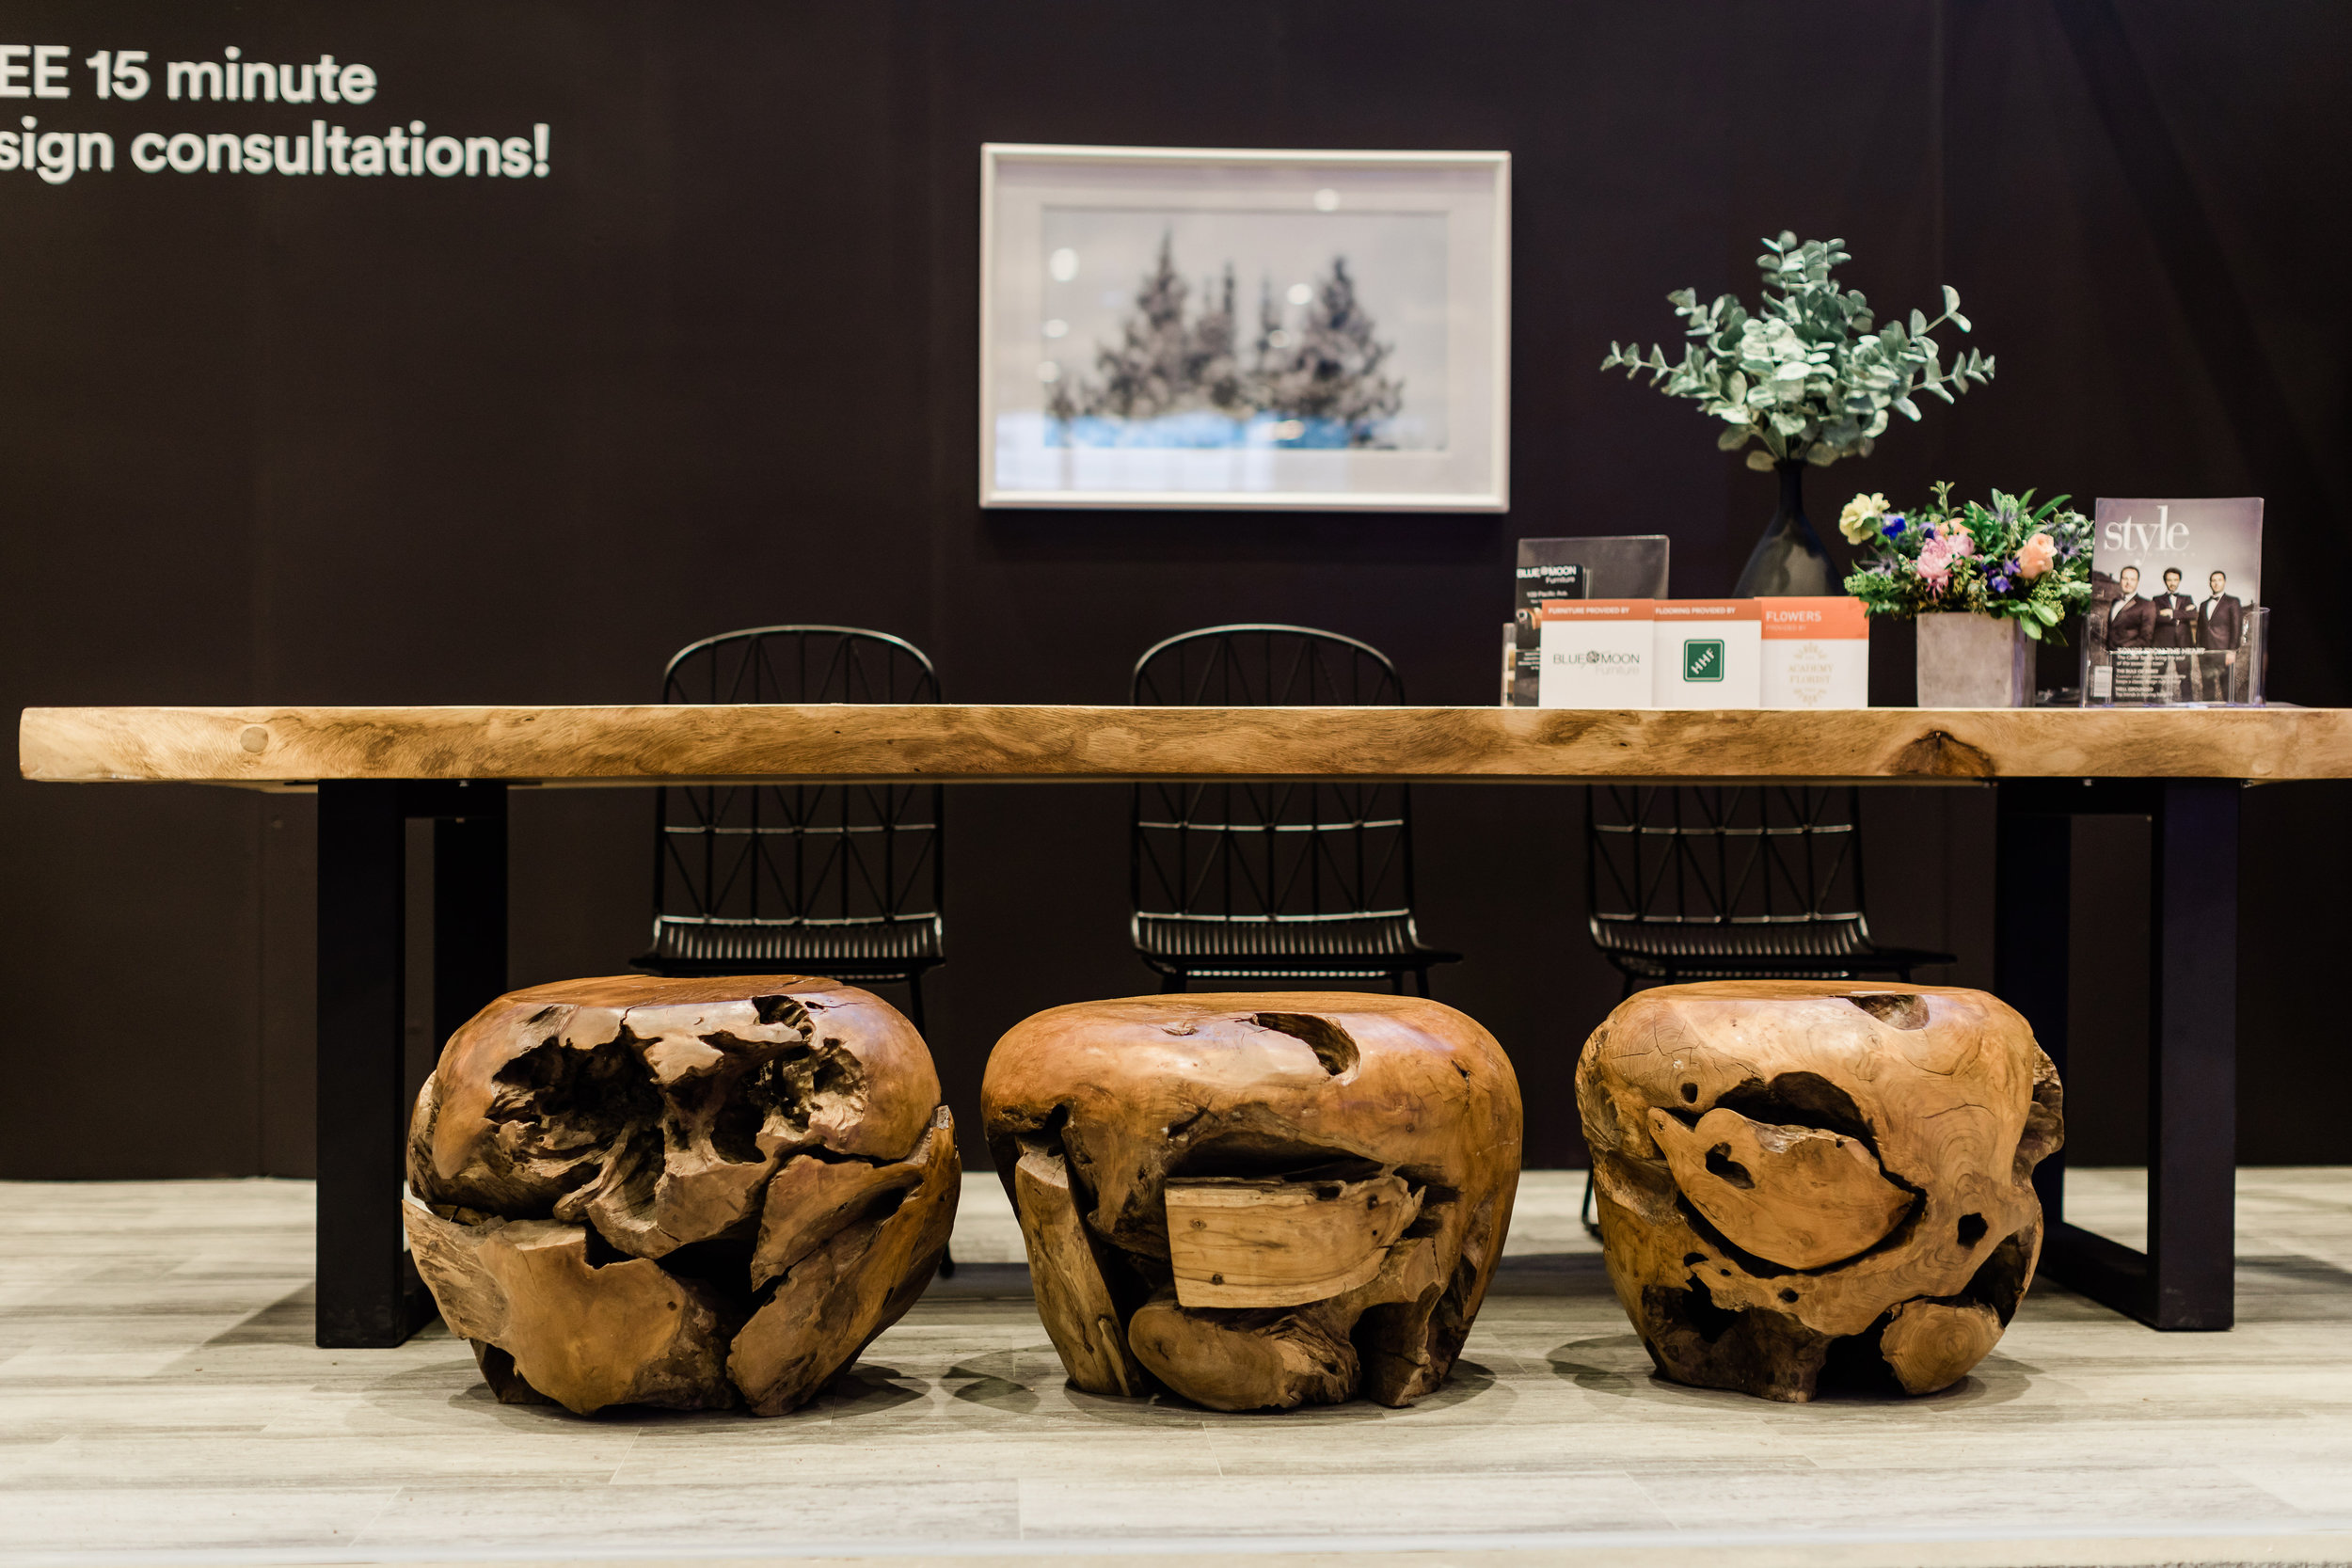 Winnipeg renovation show. Blue Moon Furniture. The Design Studio. teak root balls, wire chairs, majestic live edge furniture.